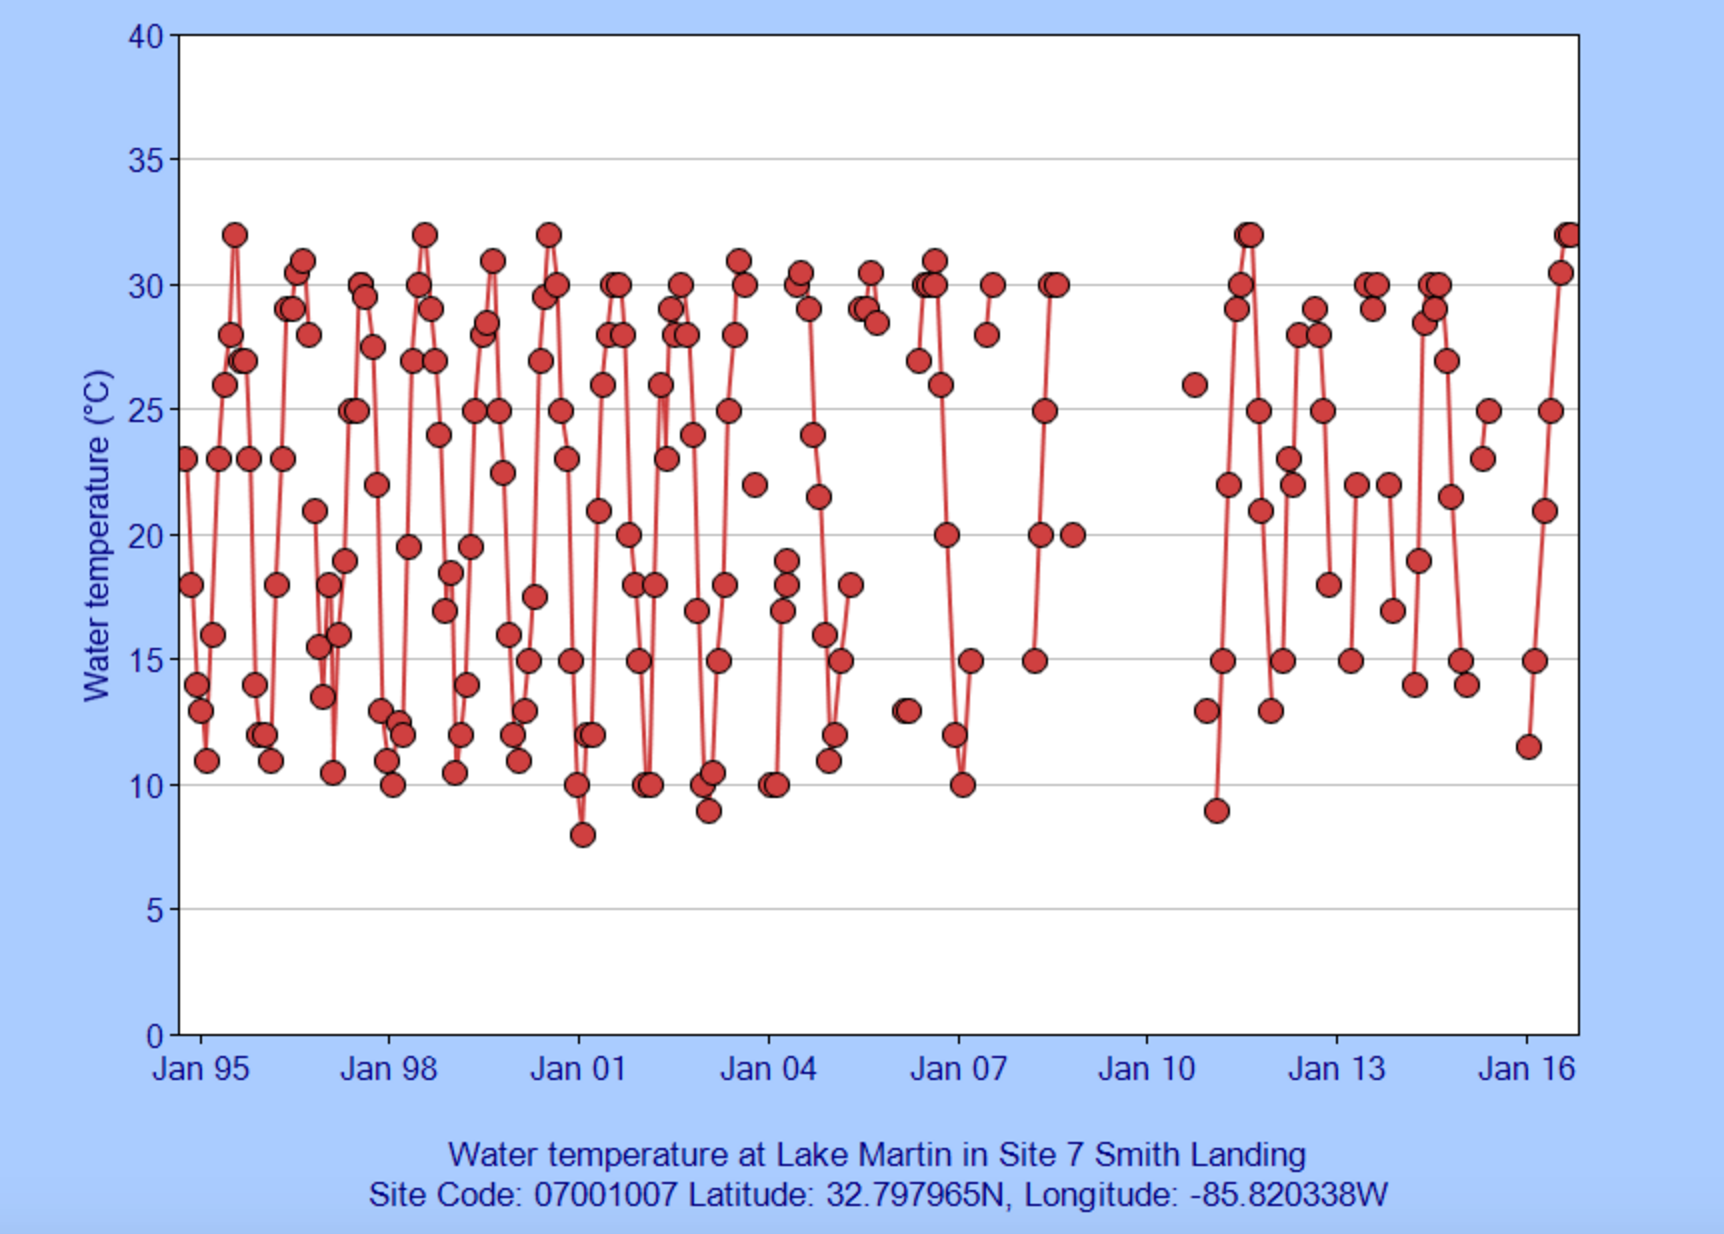 (graph courtesy of Alabama Water Watch)